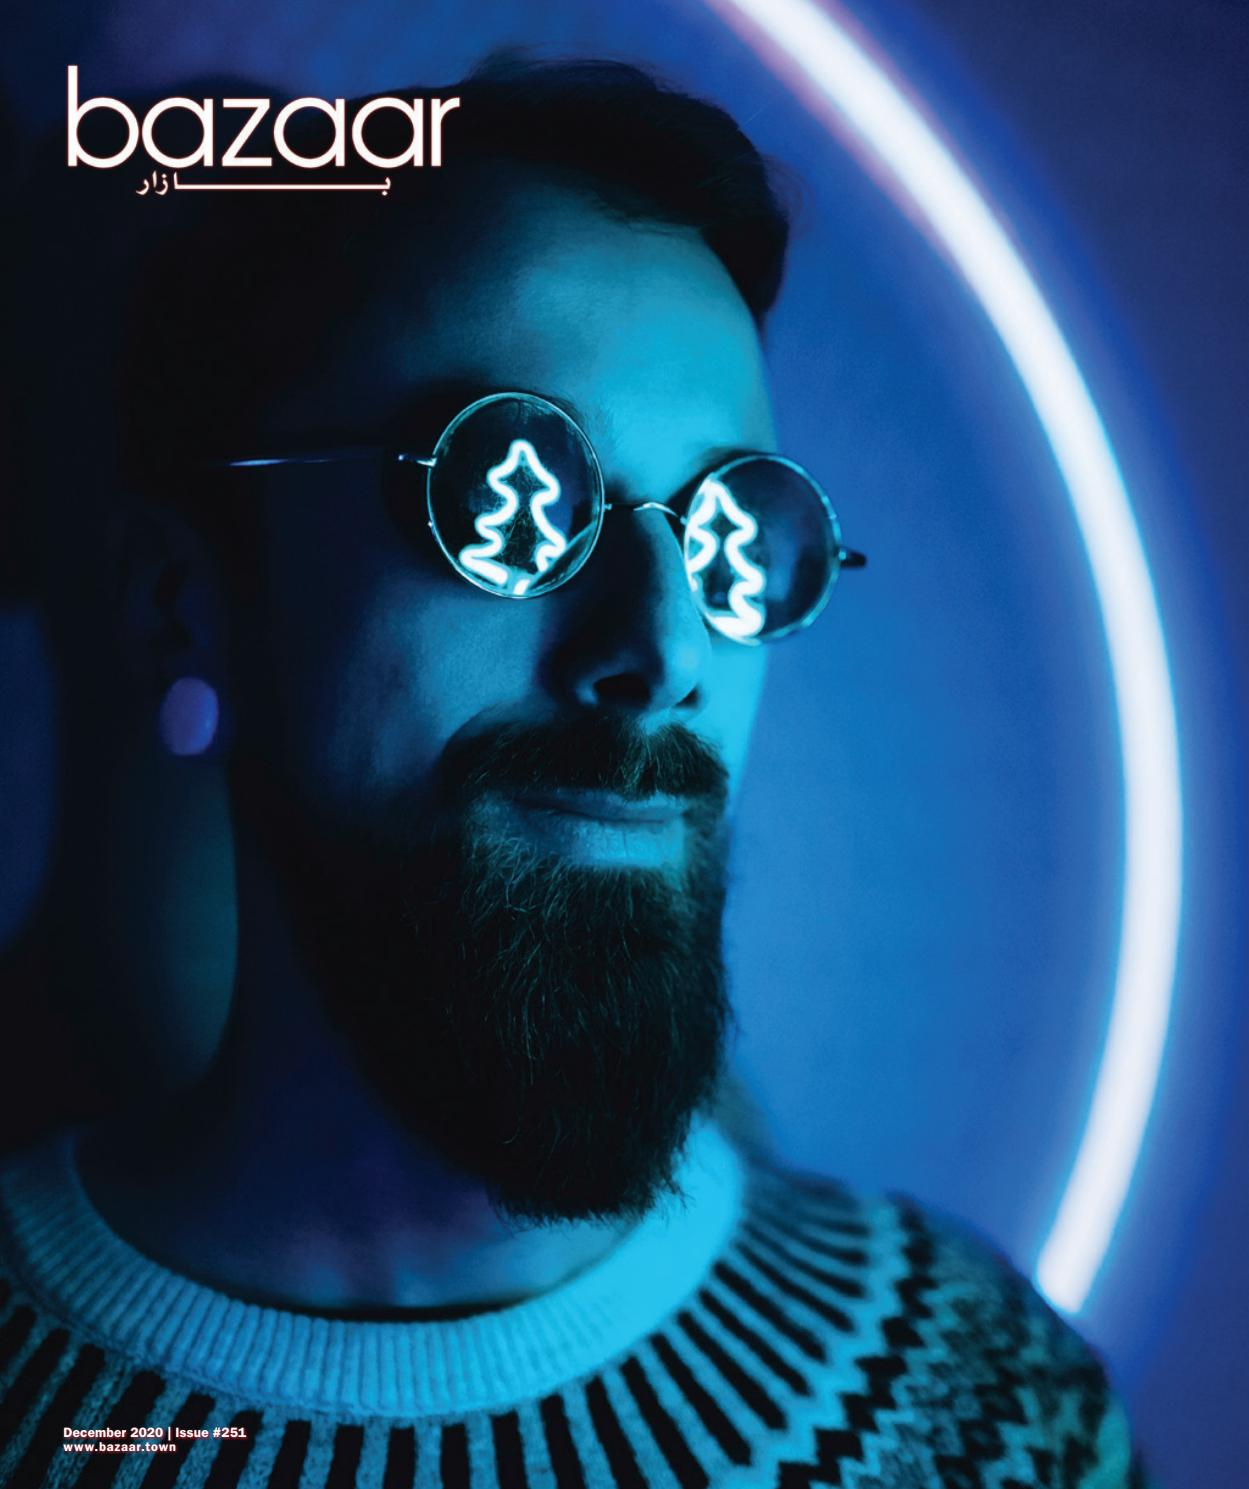 Bazaar December 2020 Issue By Bazaar Magazine Issuu